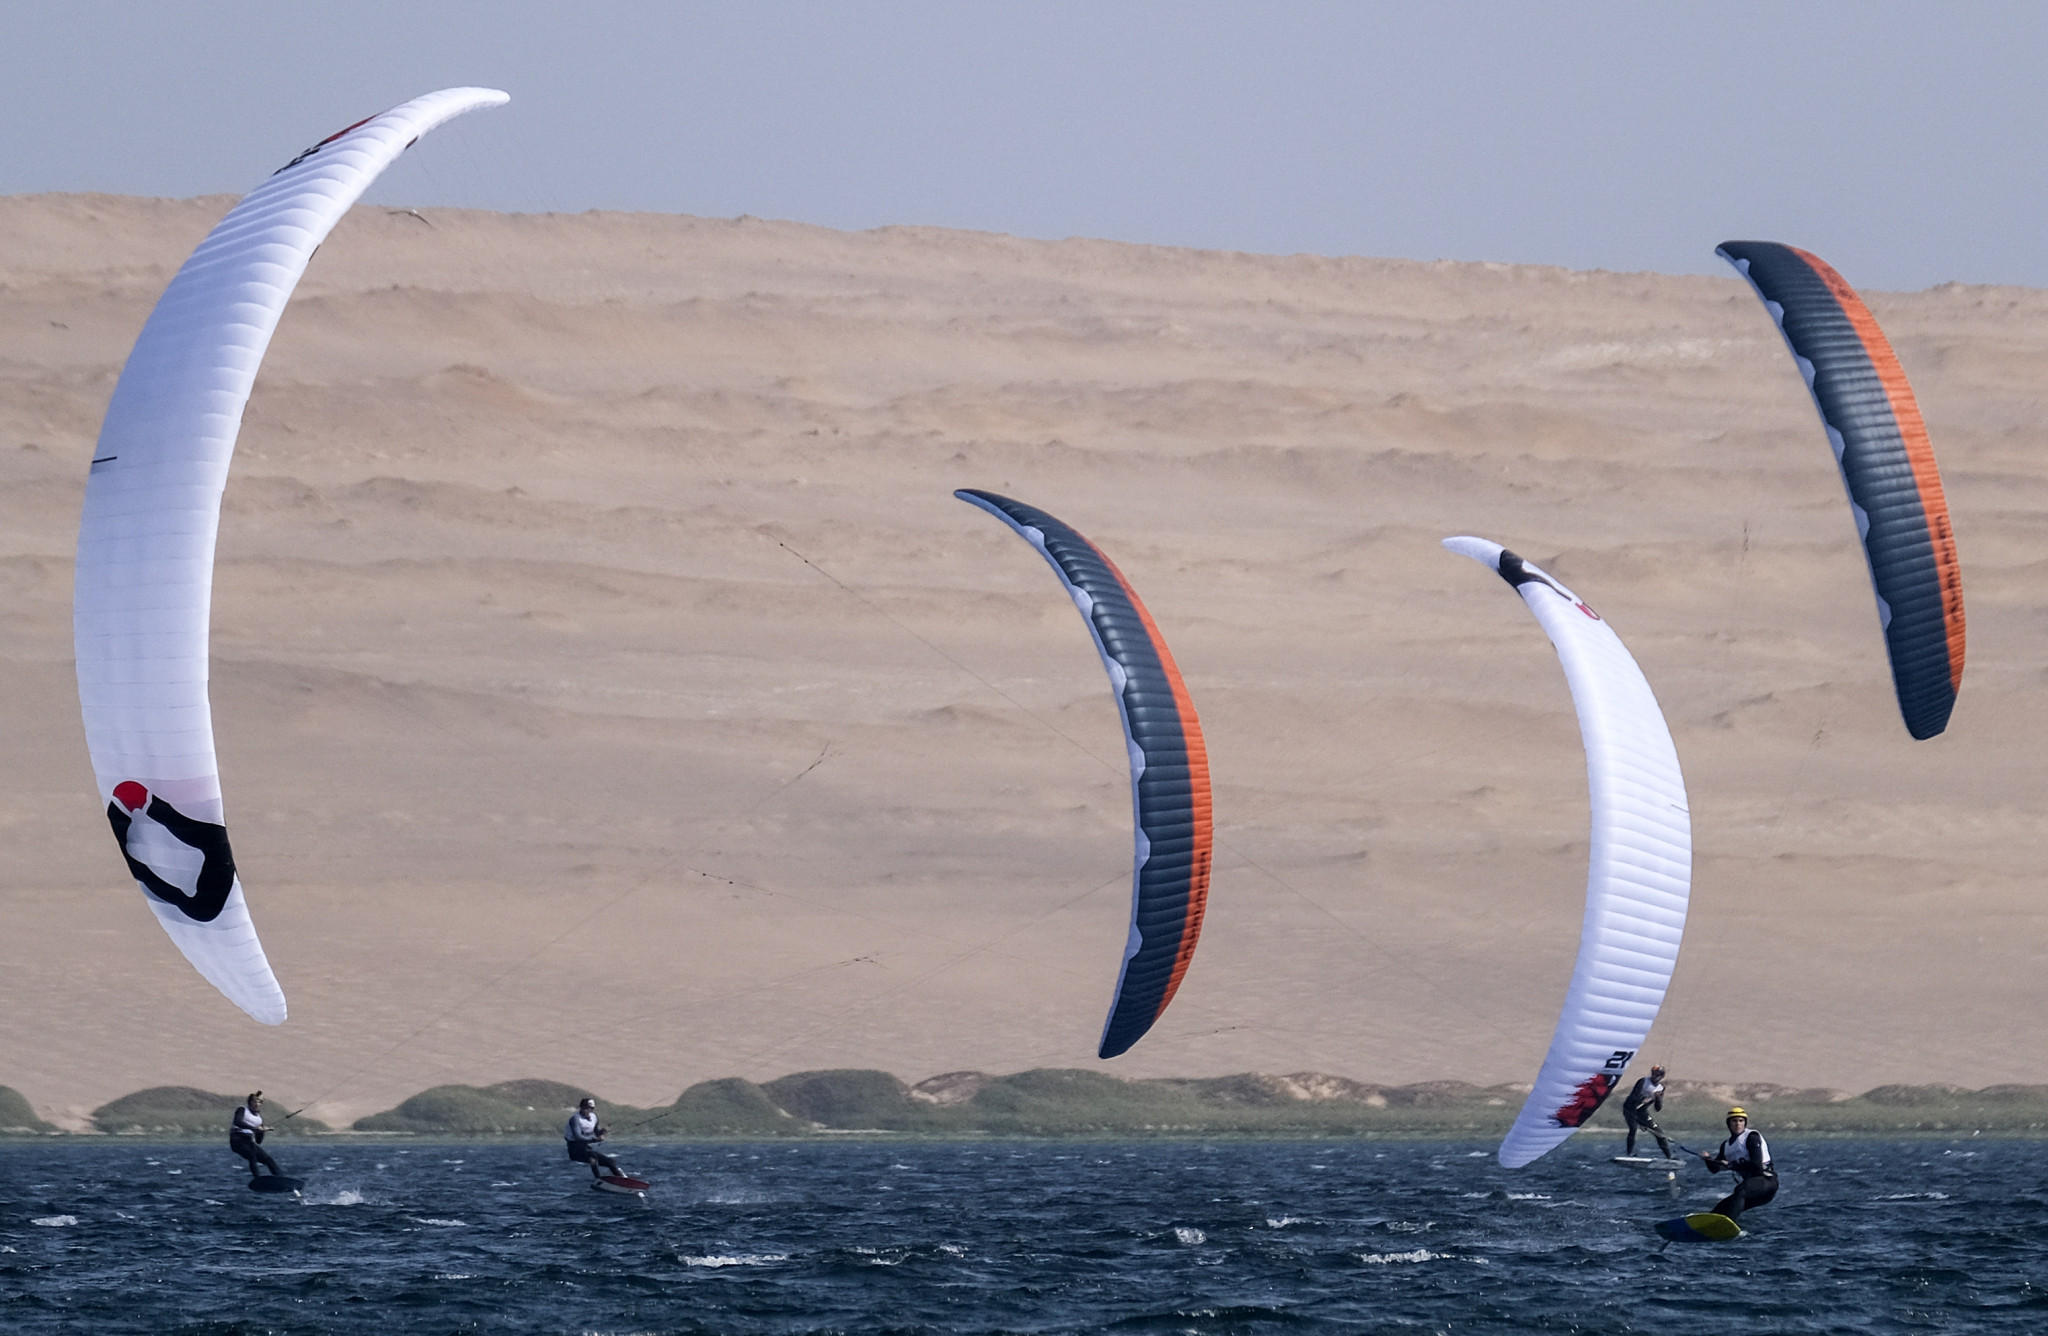 Sailing continued to take place, with competitors in the open windsurfing taking to the water ©Lima 2019